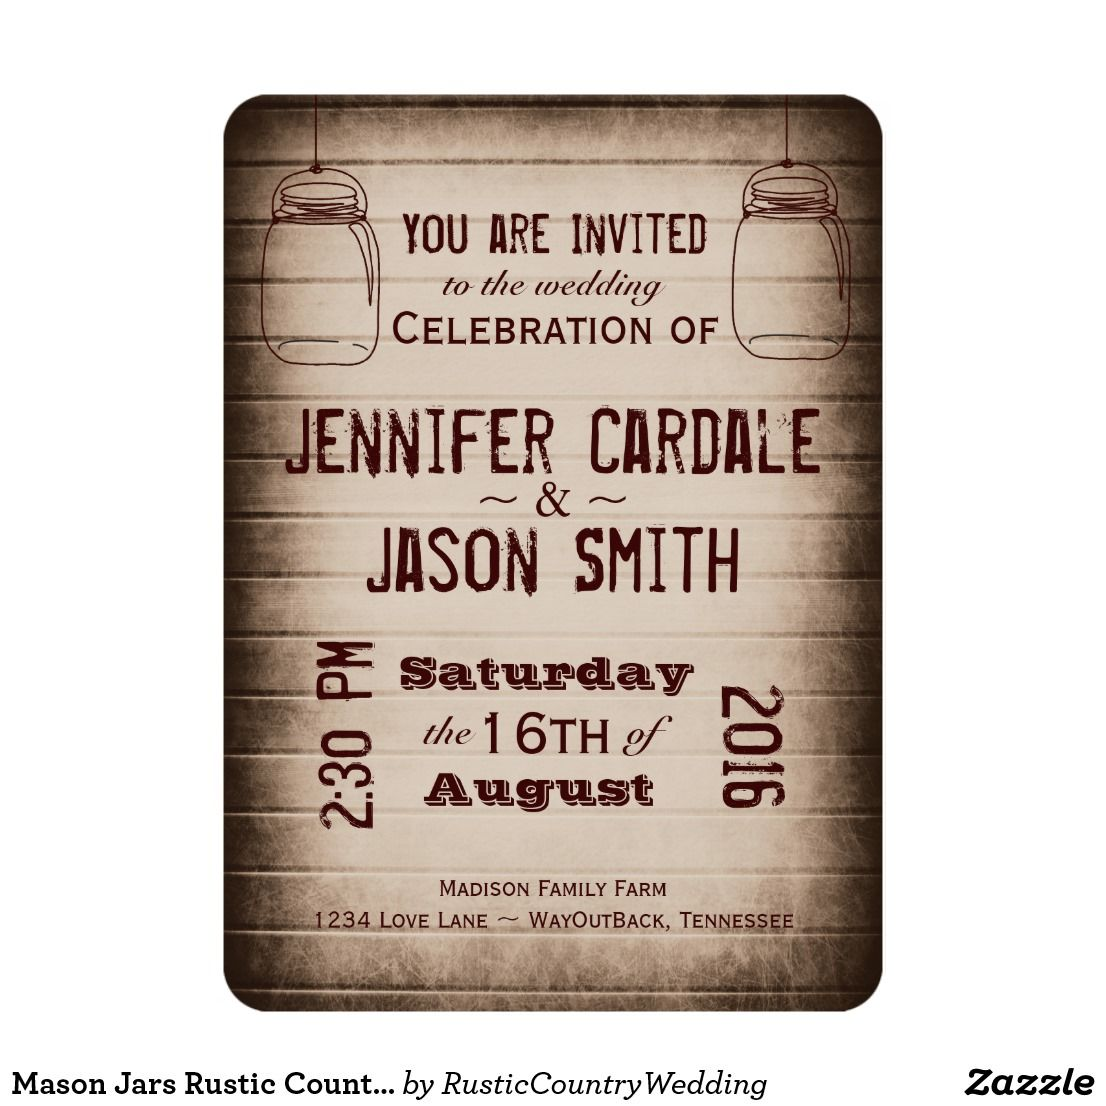 Mason Jars Rustic Country Wood Wedding Invitations | Wedding barns ...